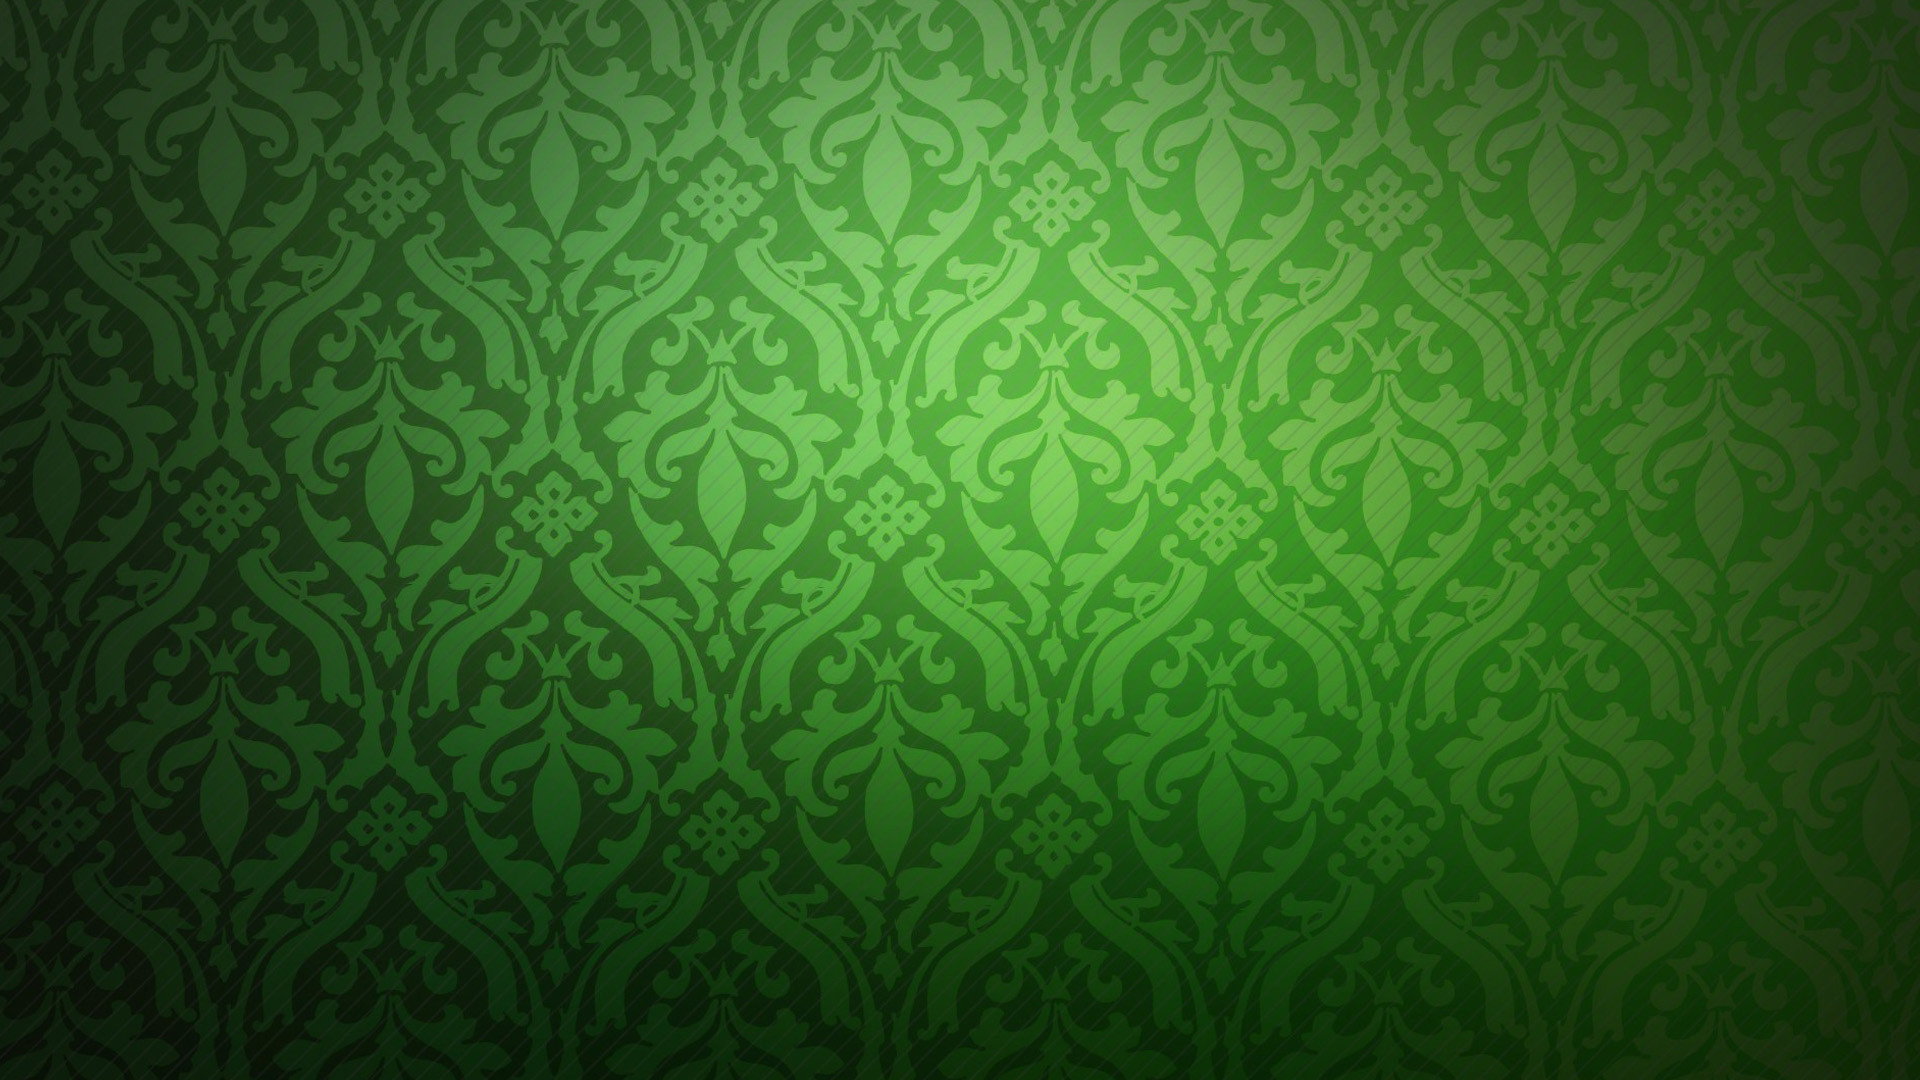 Backgrounds Green 51 Images